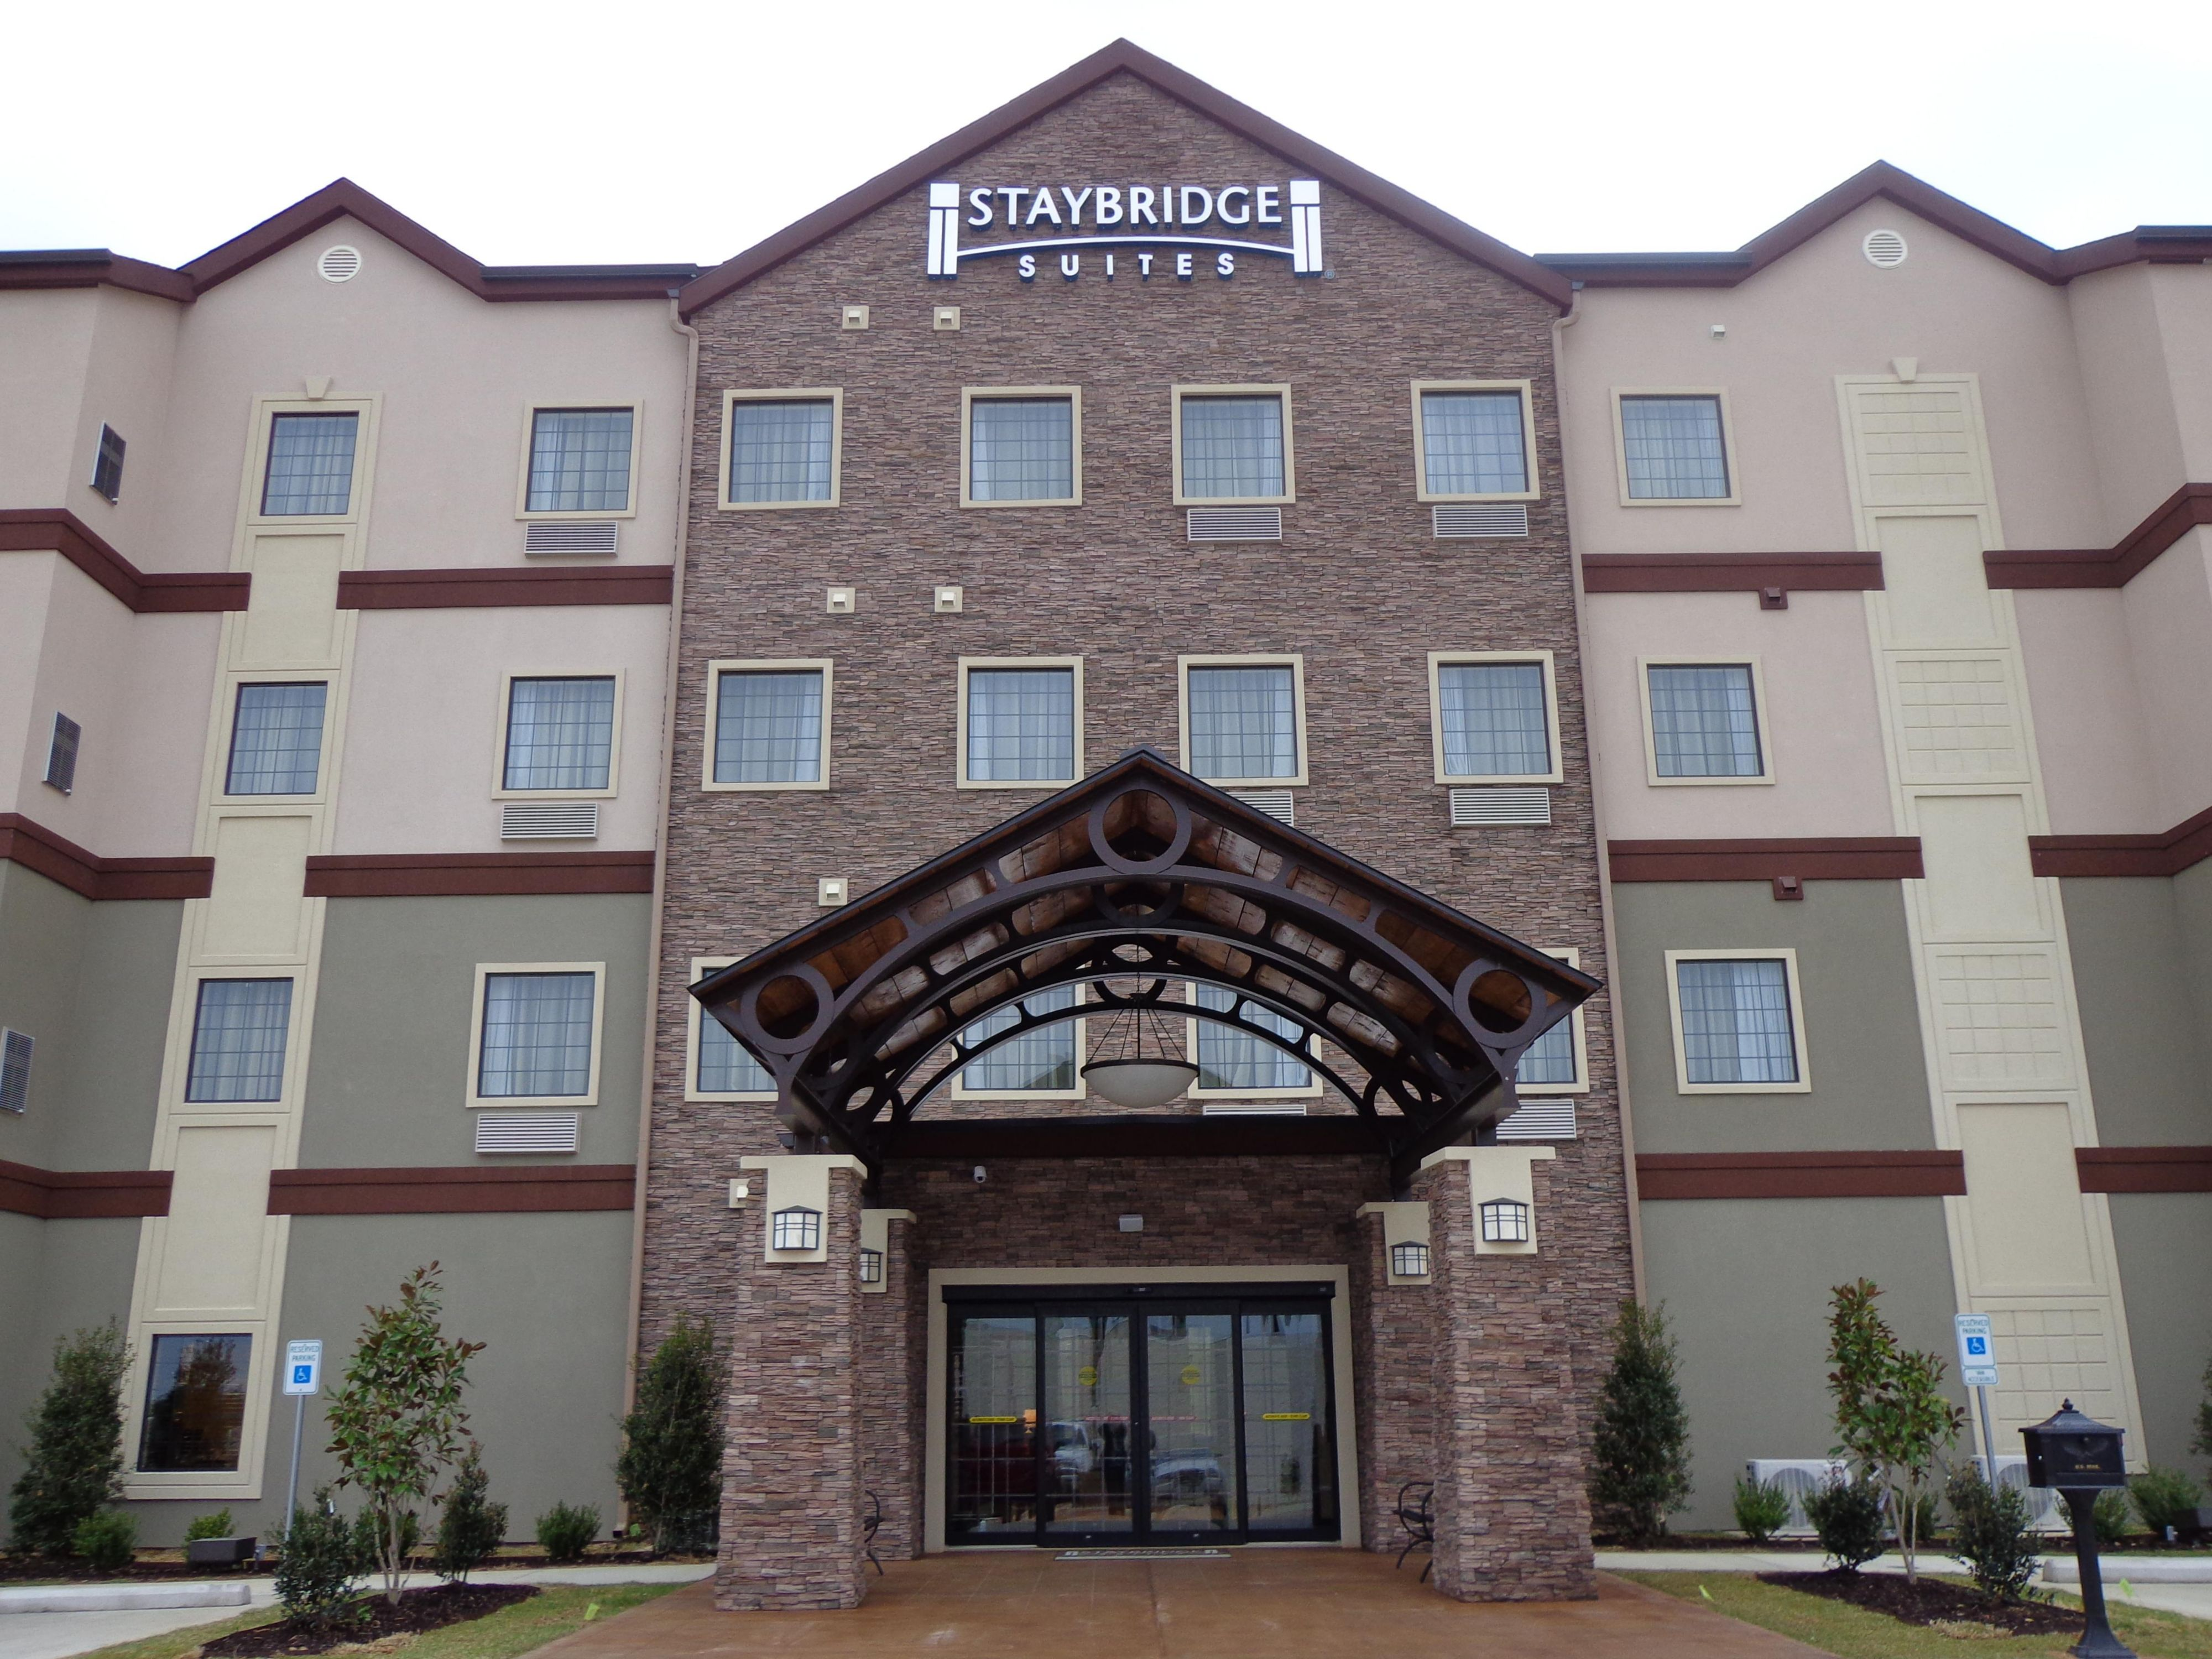 Staybridge Suites Lake Jackson Extended Stay Hotel In United States With Full Kitchen